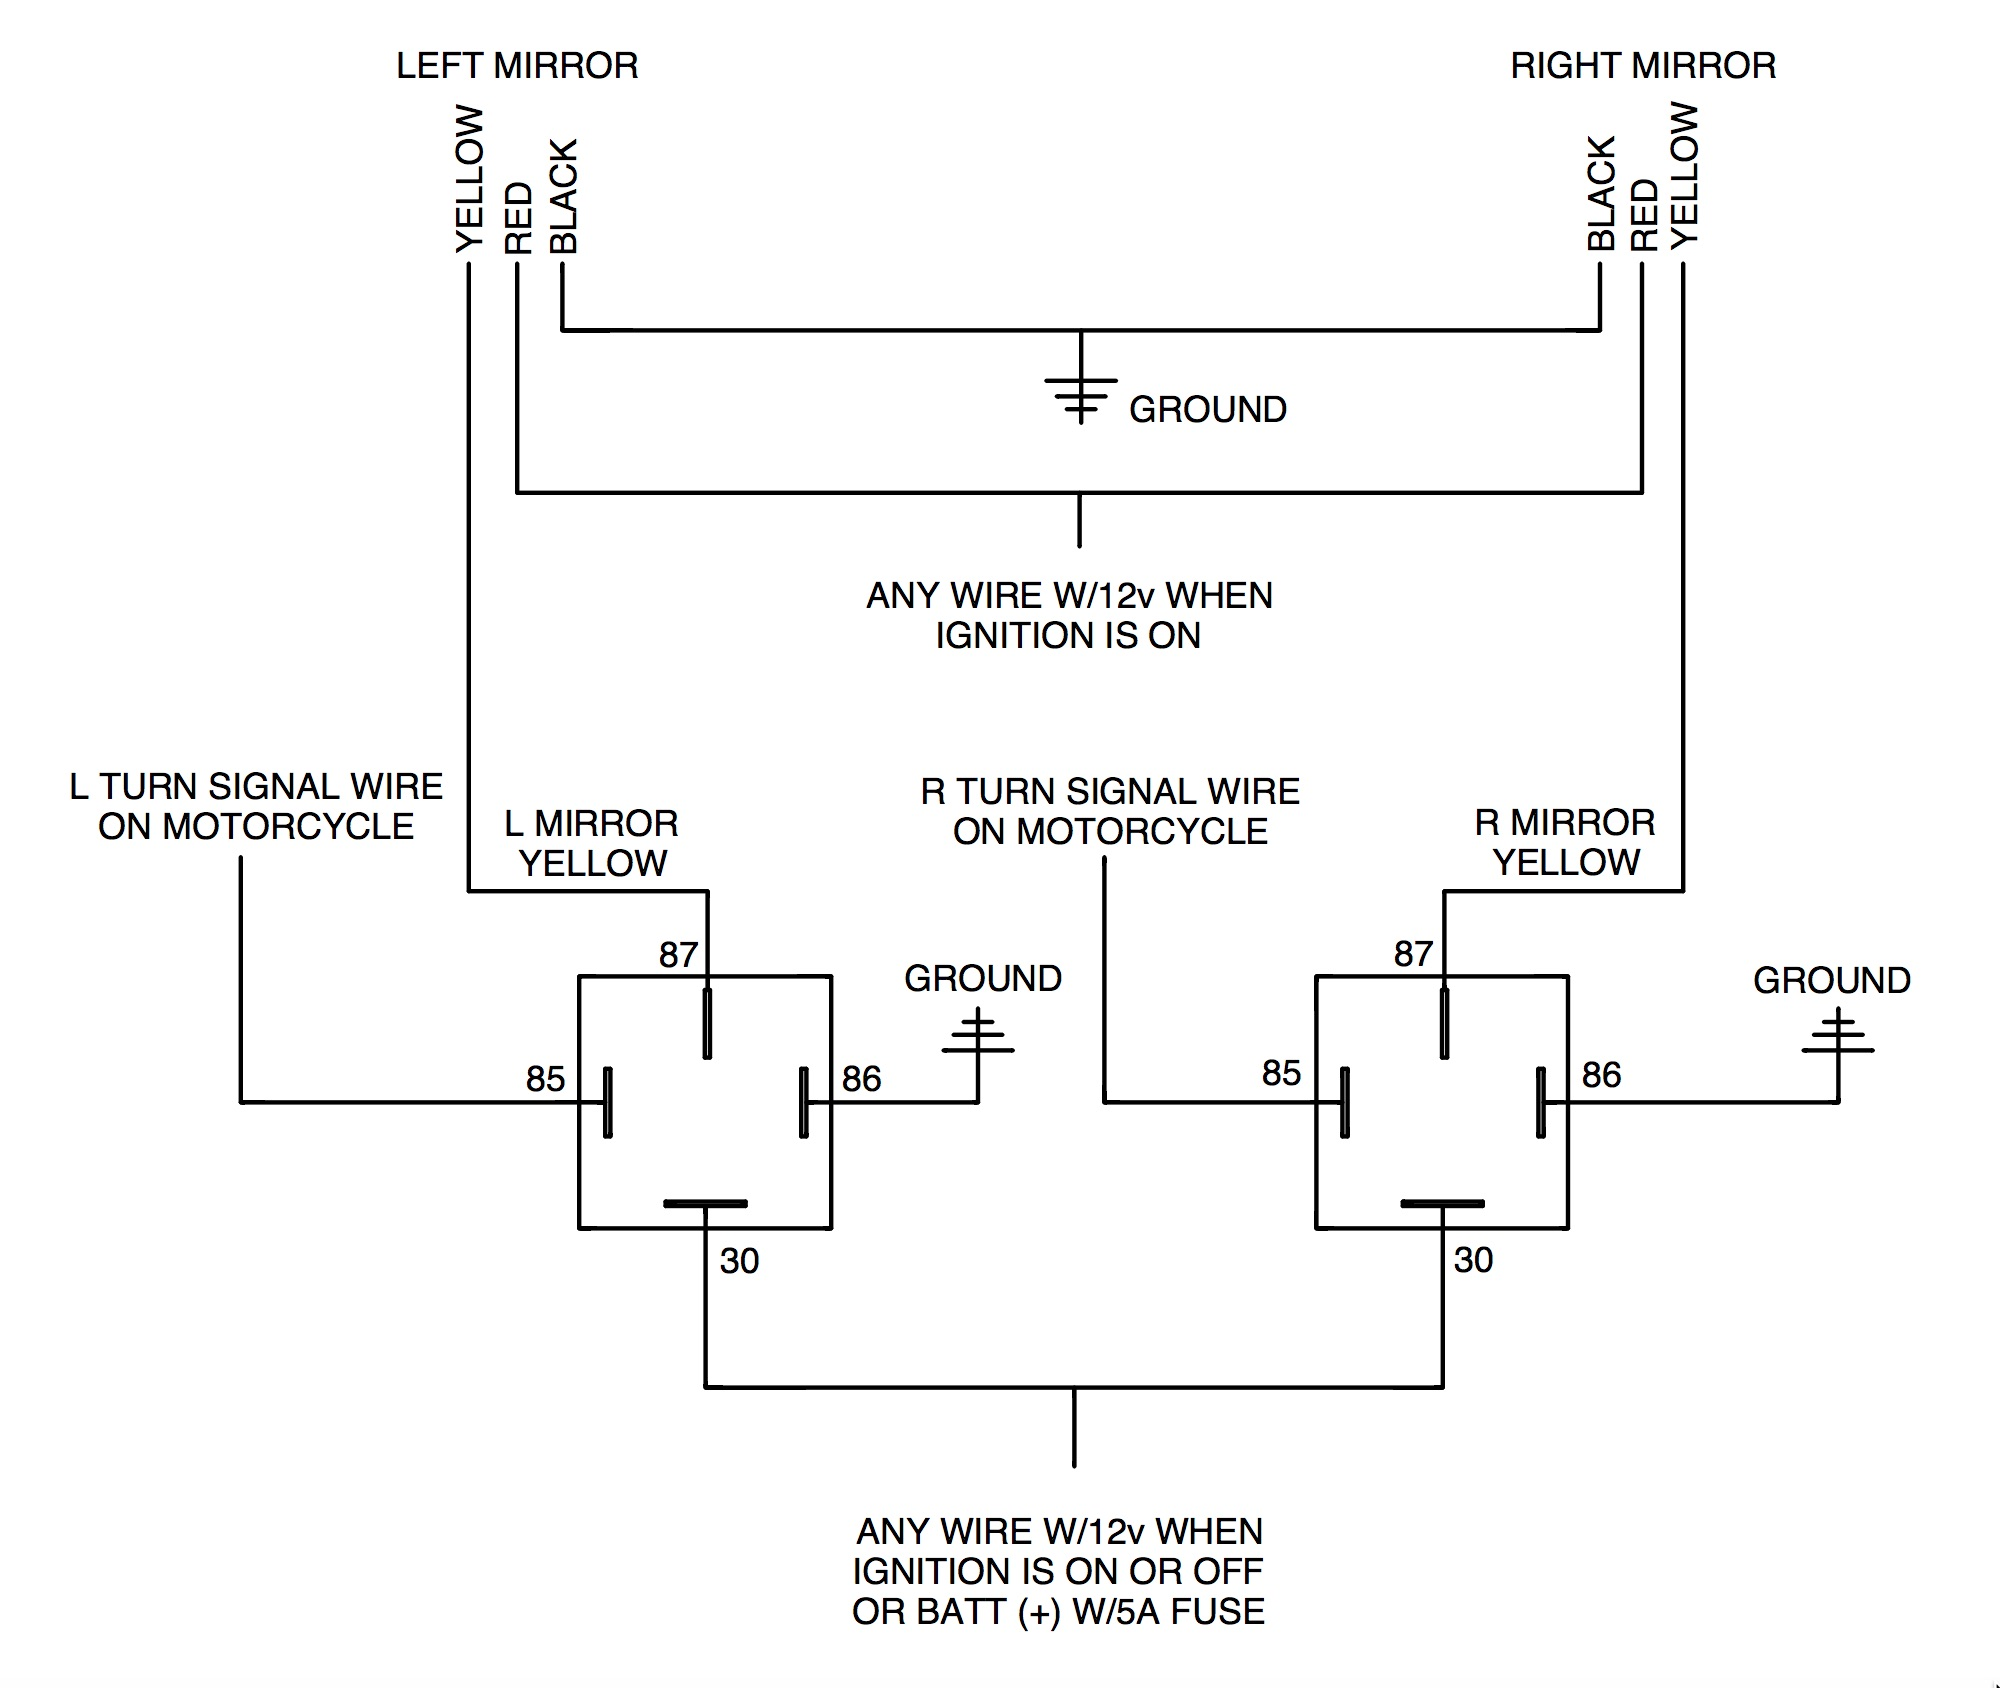 Rivco dual relay diagram adding rivco led mirrors to a victory cross country motorcycle Basic Turn Signal Wiring Diagram at metegol.co